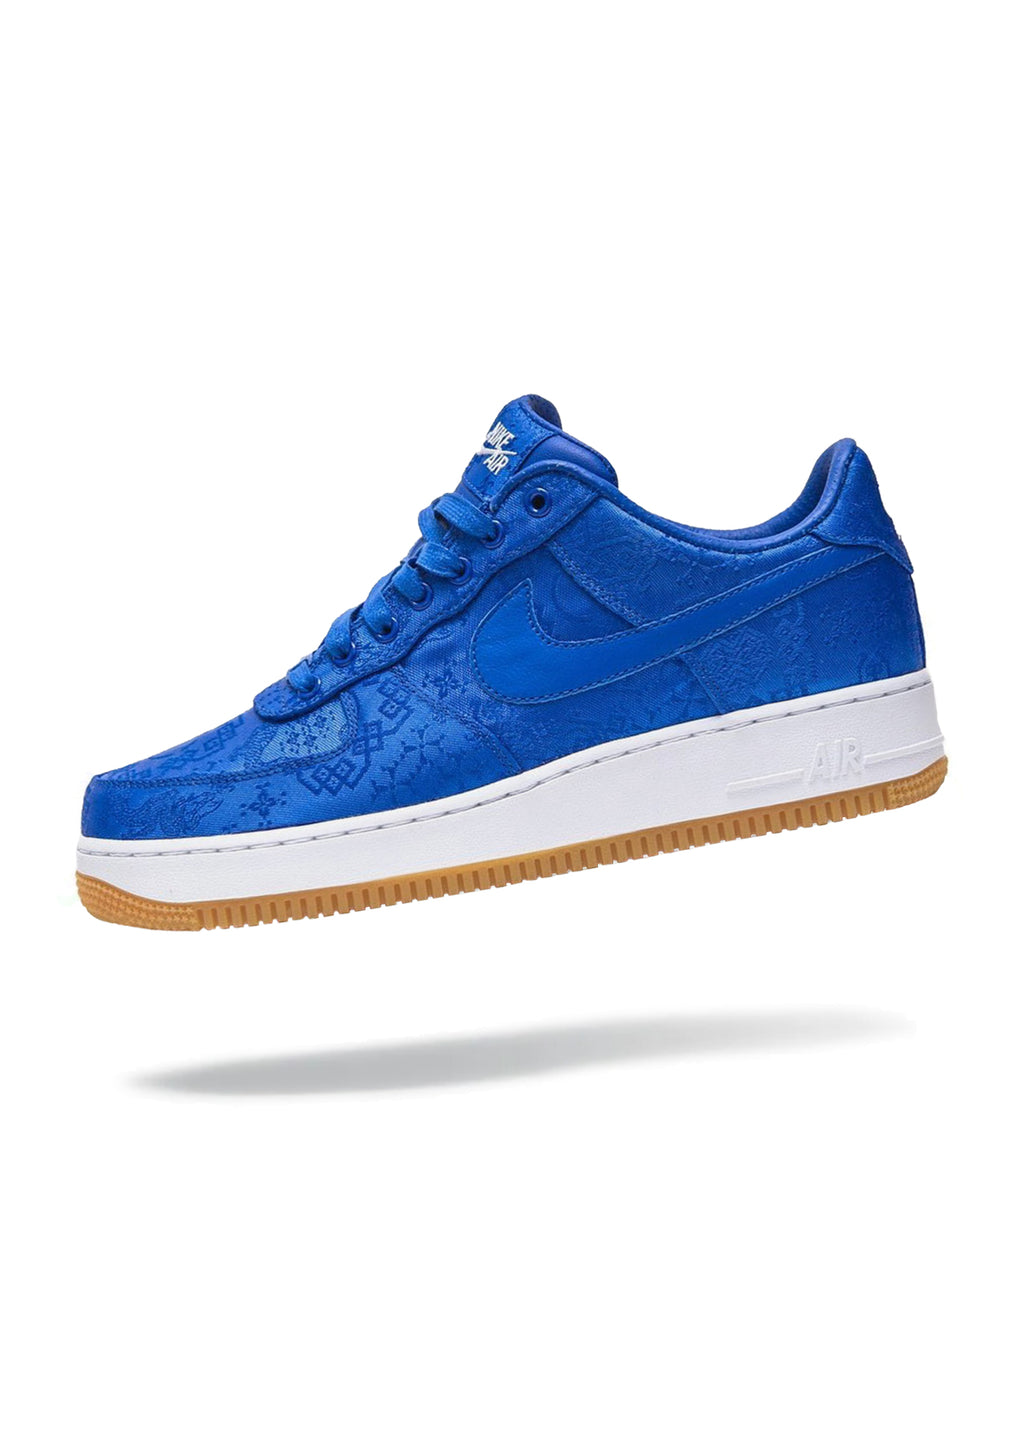 Nike Air Force 1 X CLOT Blue